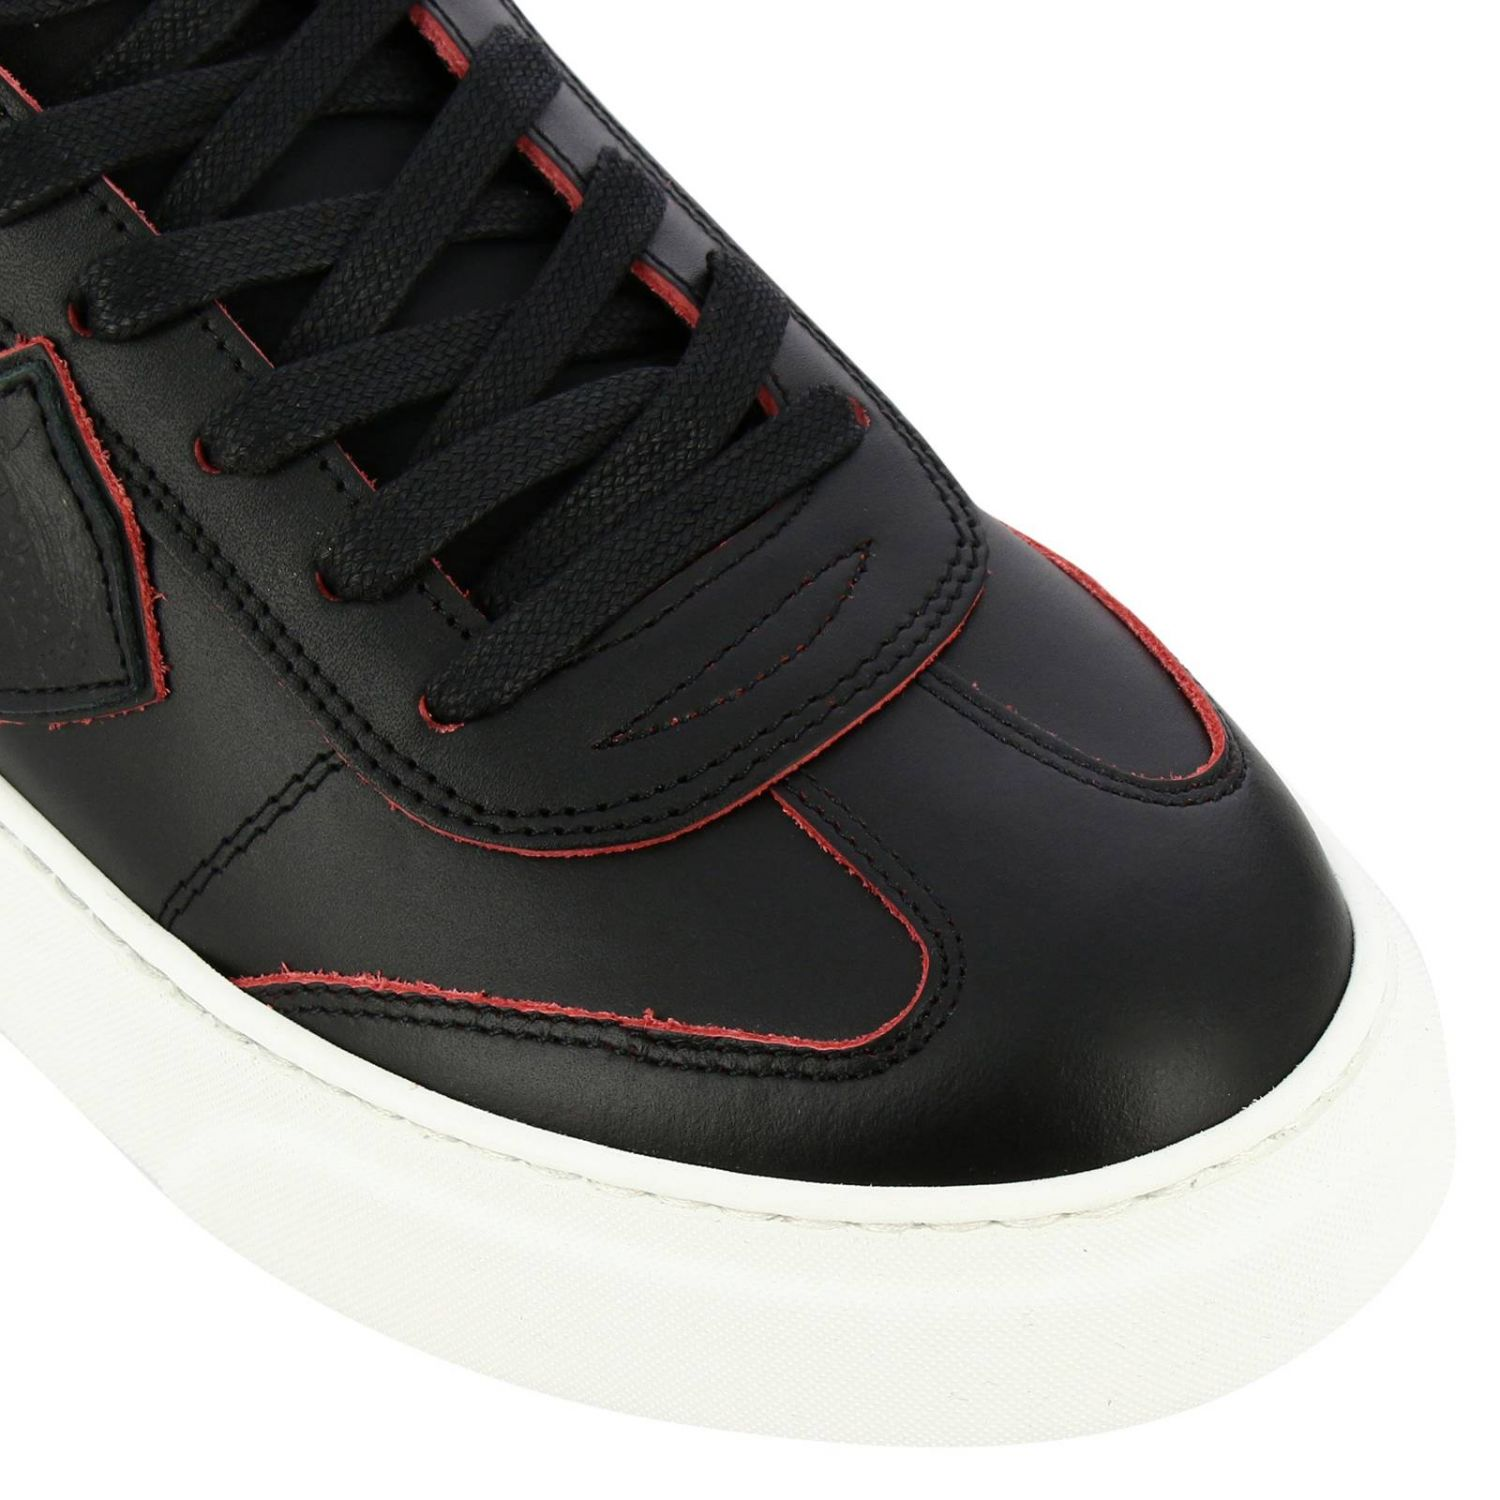 Sneakers Temple Philippe Model stringata in pelle liscia nero 3